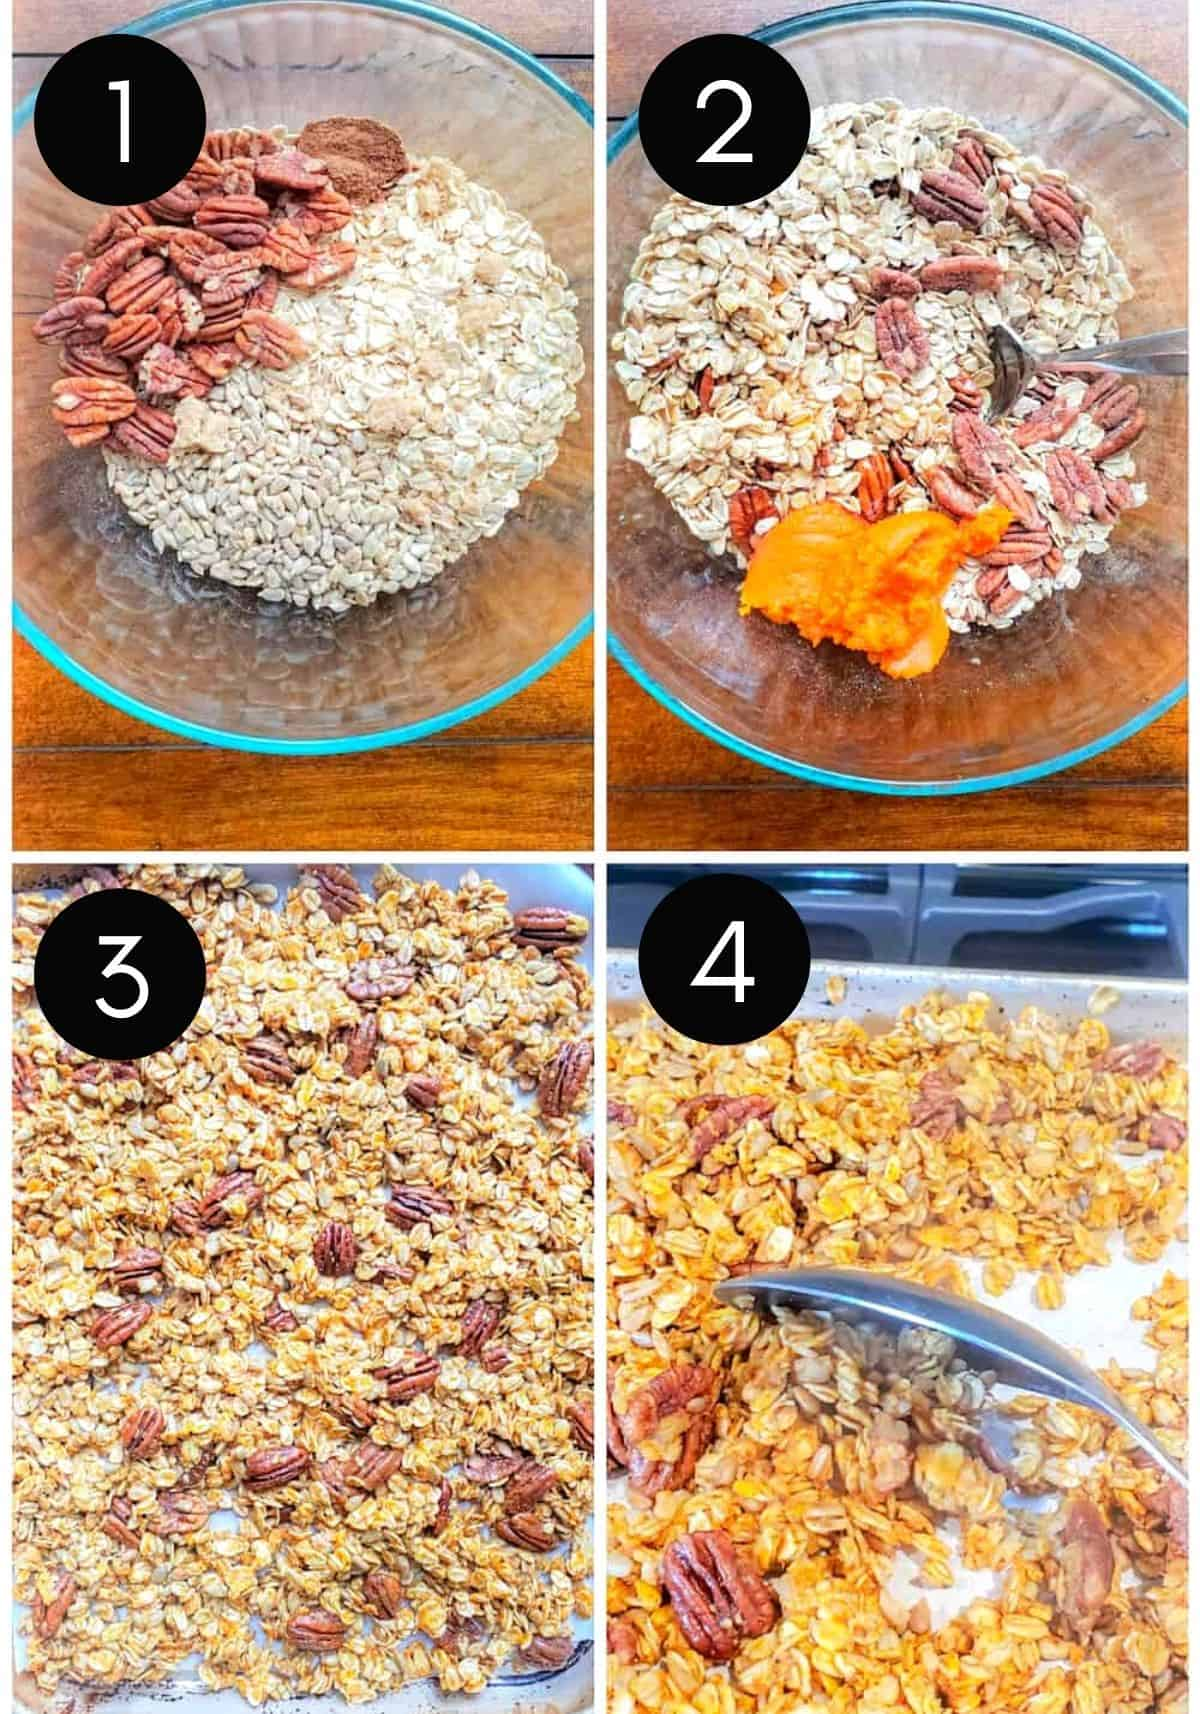 Four prep image collage showing granola being prepped and cooked.